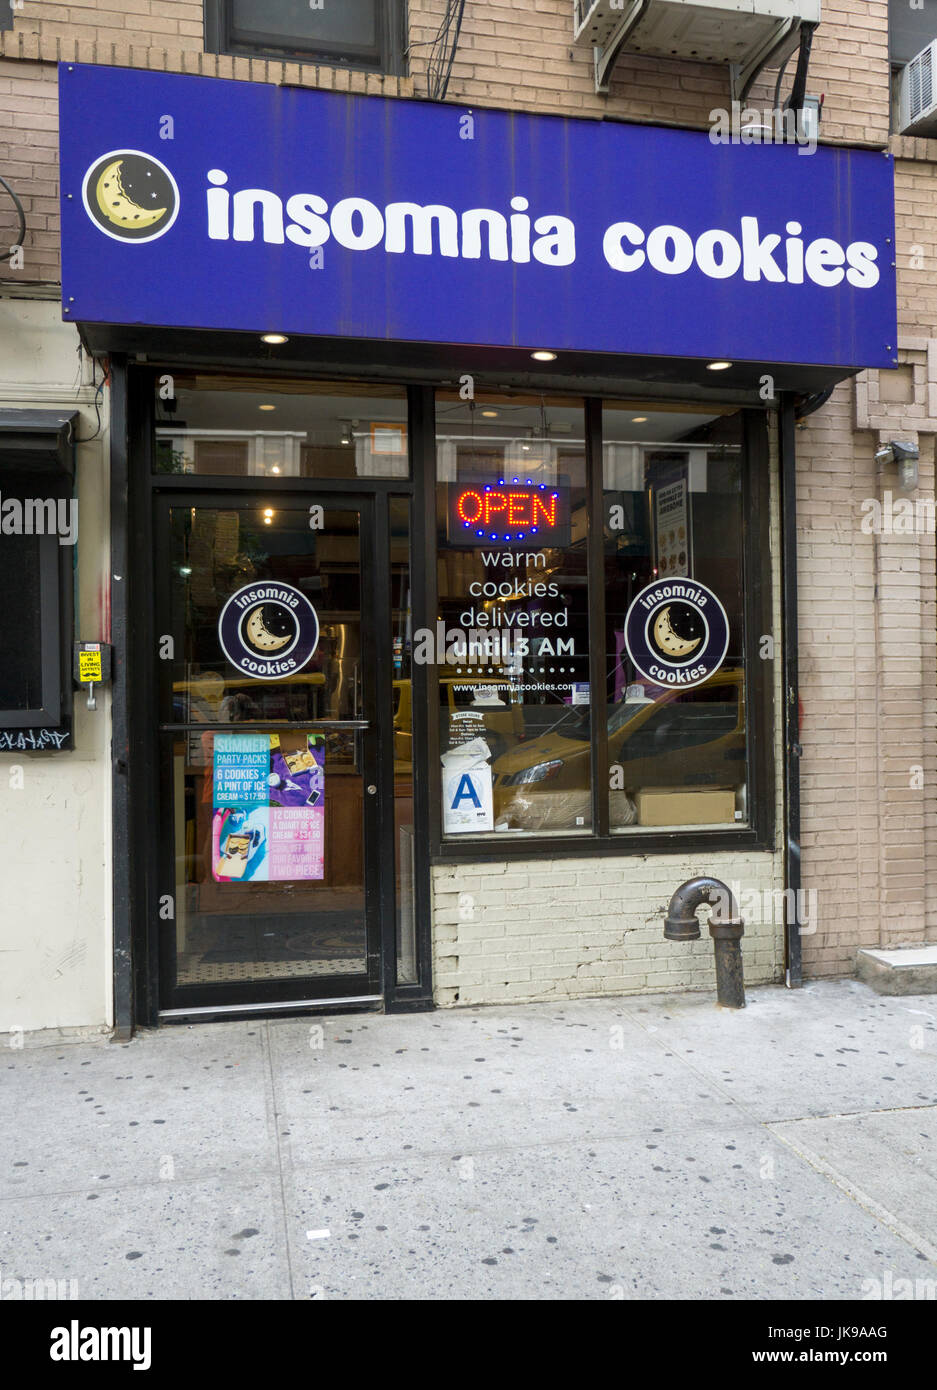 The exterior of Insomnia Cookies, a bakery in the East Village that specializes in delivering warm cookies until - Stock Image